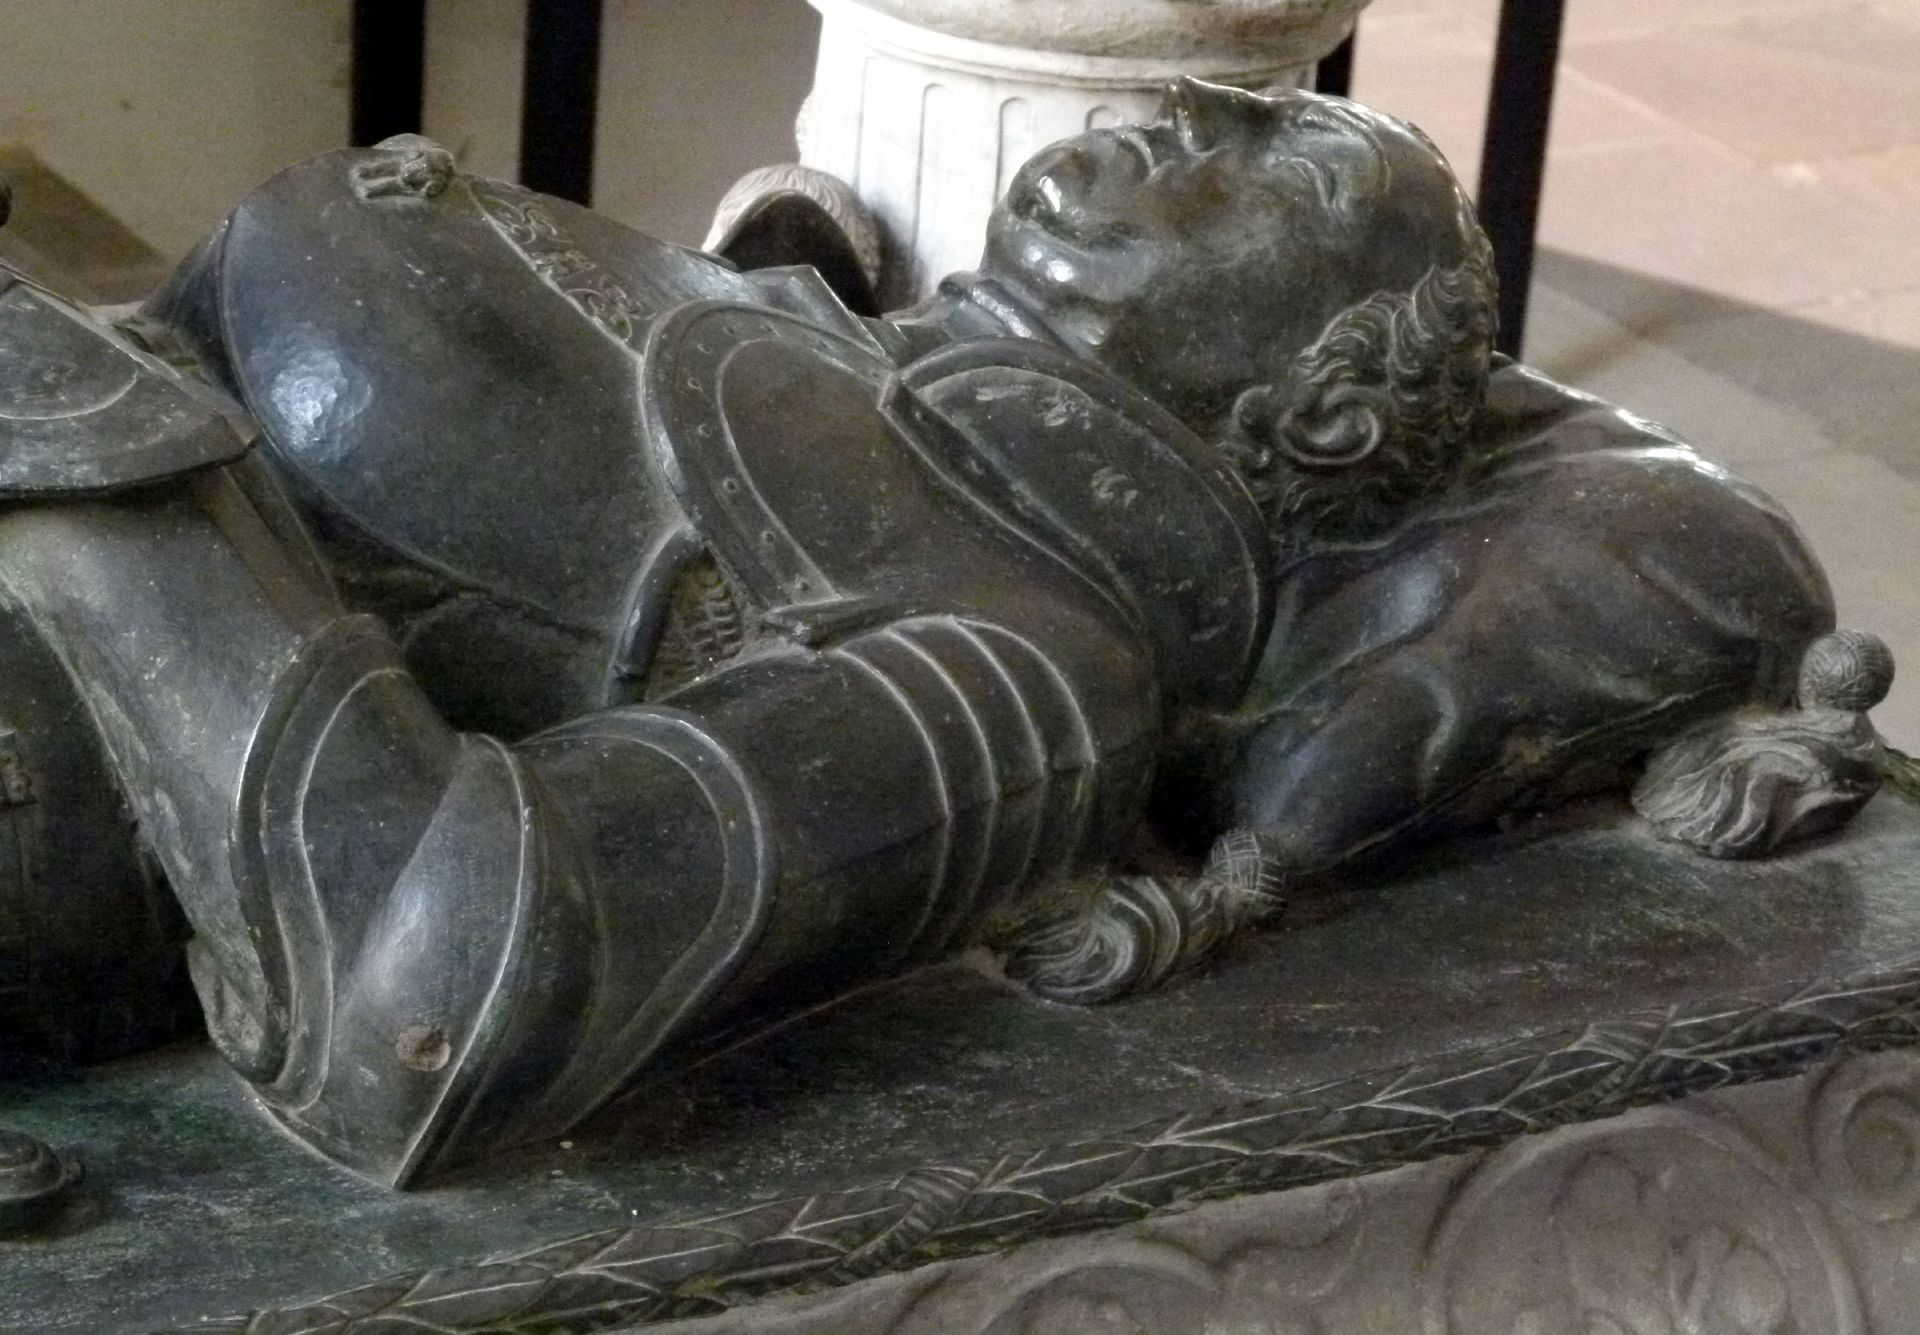 Tomb of Count Hoyer VI of Mansfeld-Vorderort (attribution) Lying figure, detail